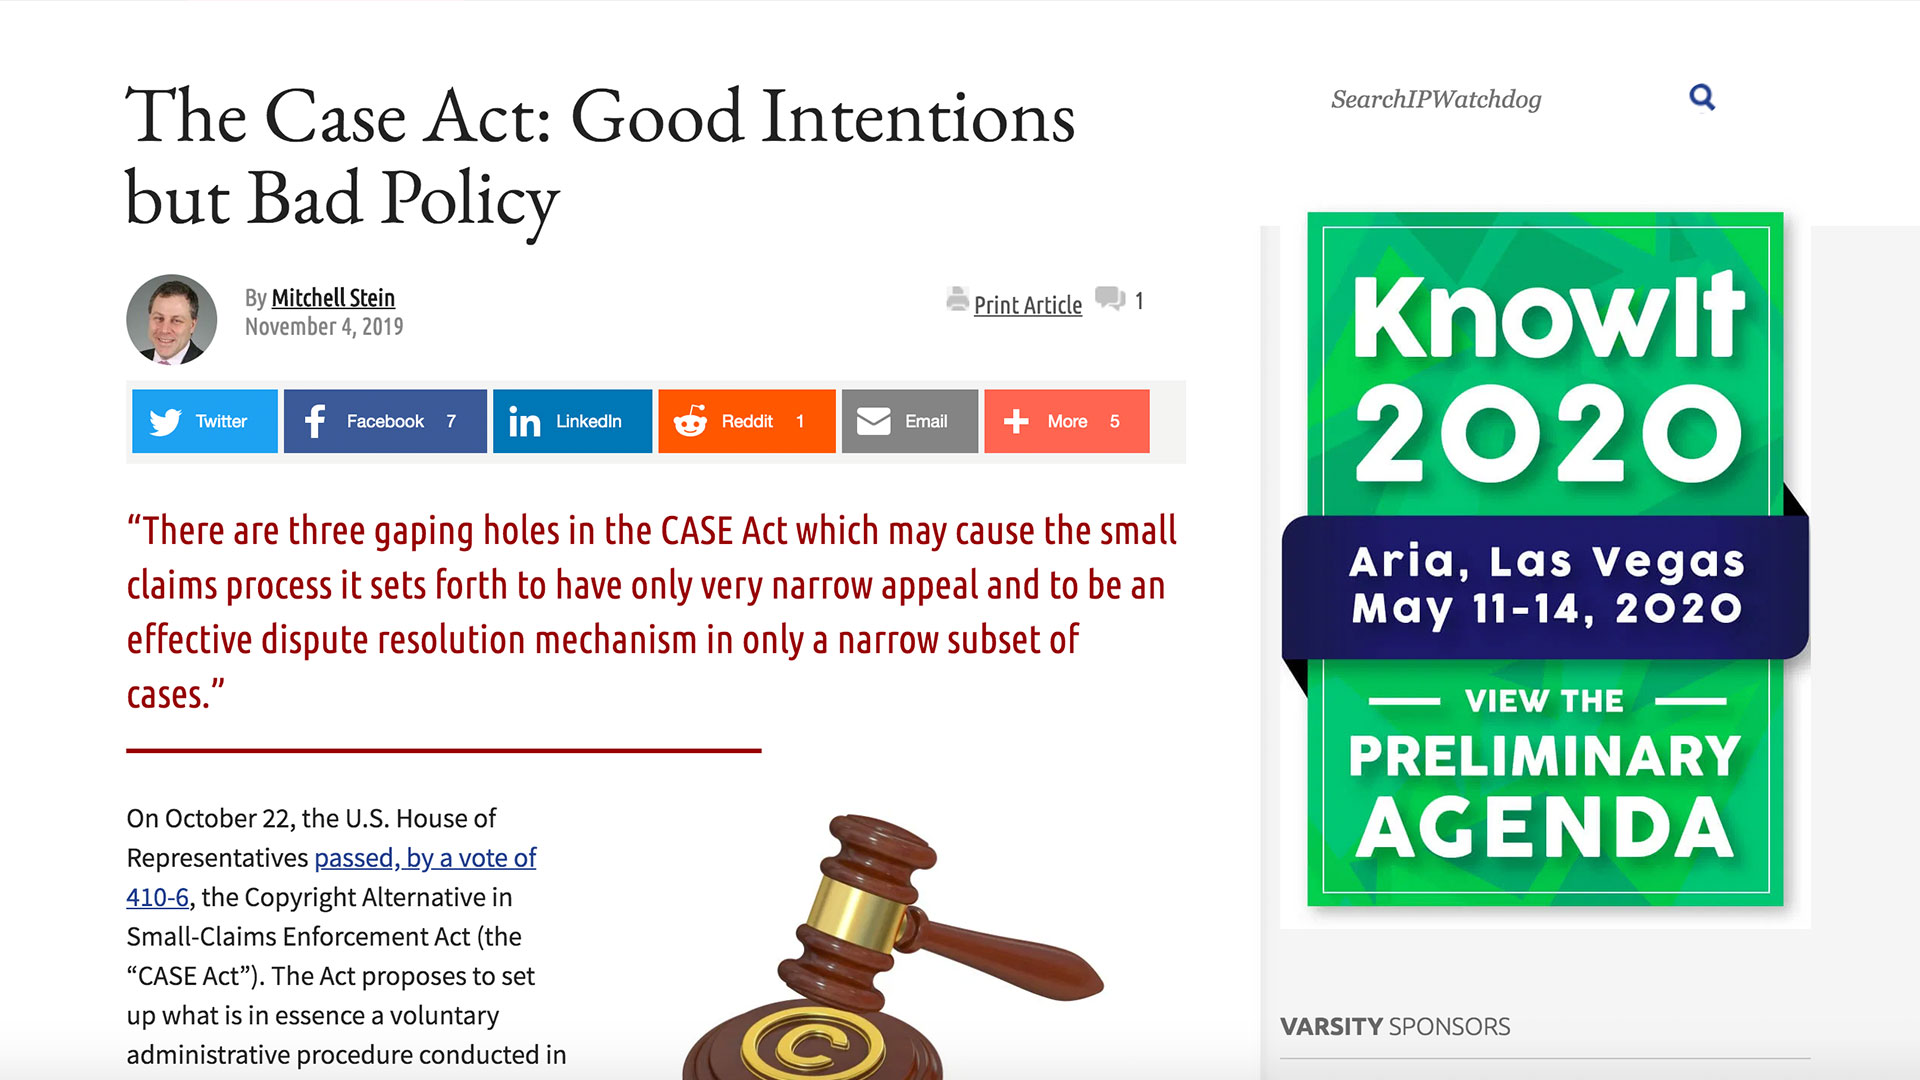 Fairness Rocks News The Case Act: Good Intentions but Bad Policy